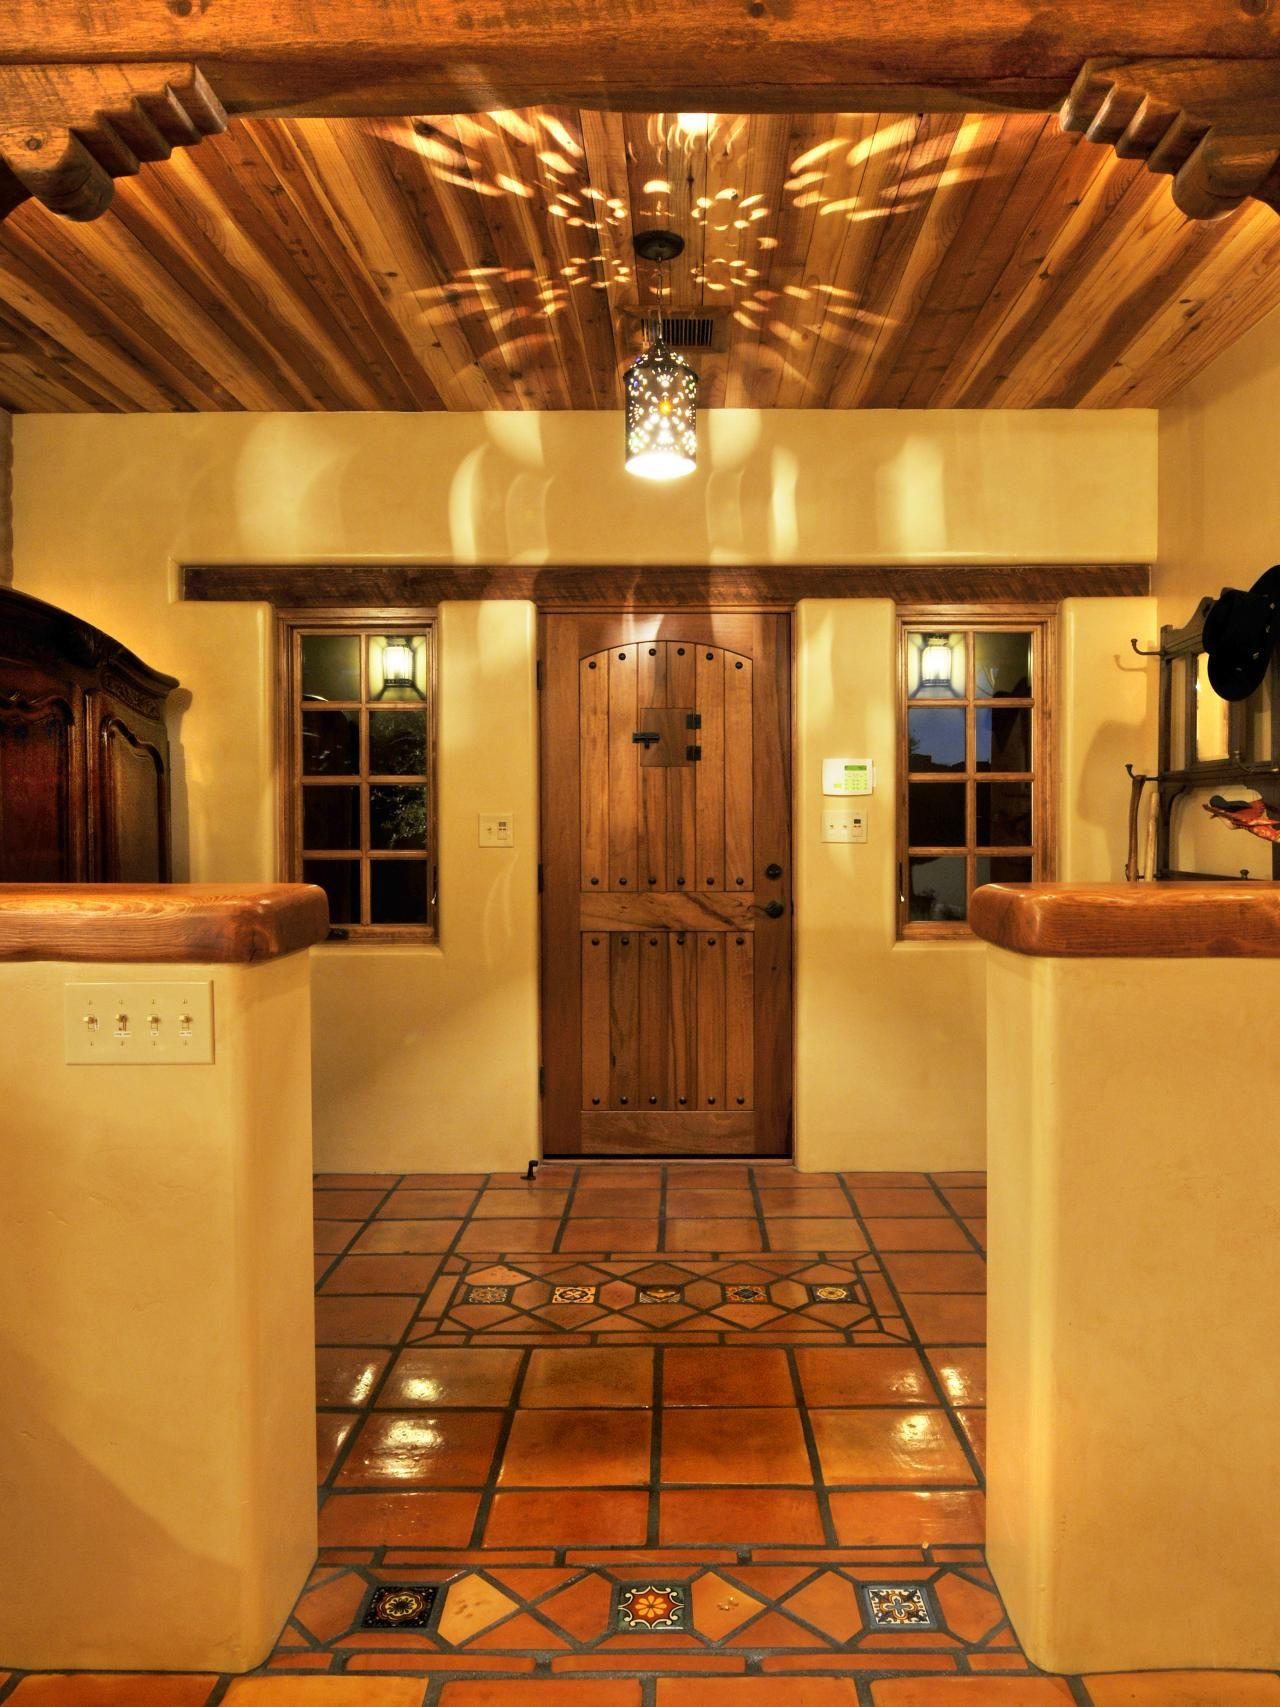 Interior Design Styles And Color Schemes For Home Decorating: Style, New Mexico Homes And Tile